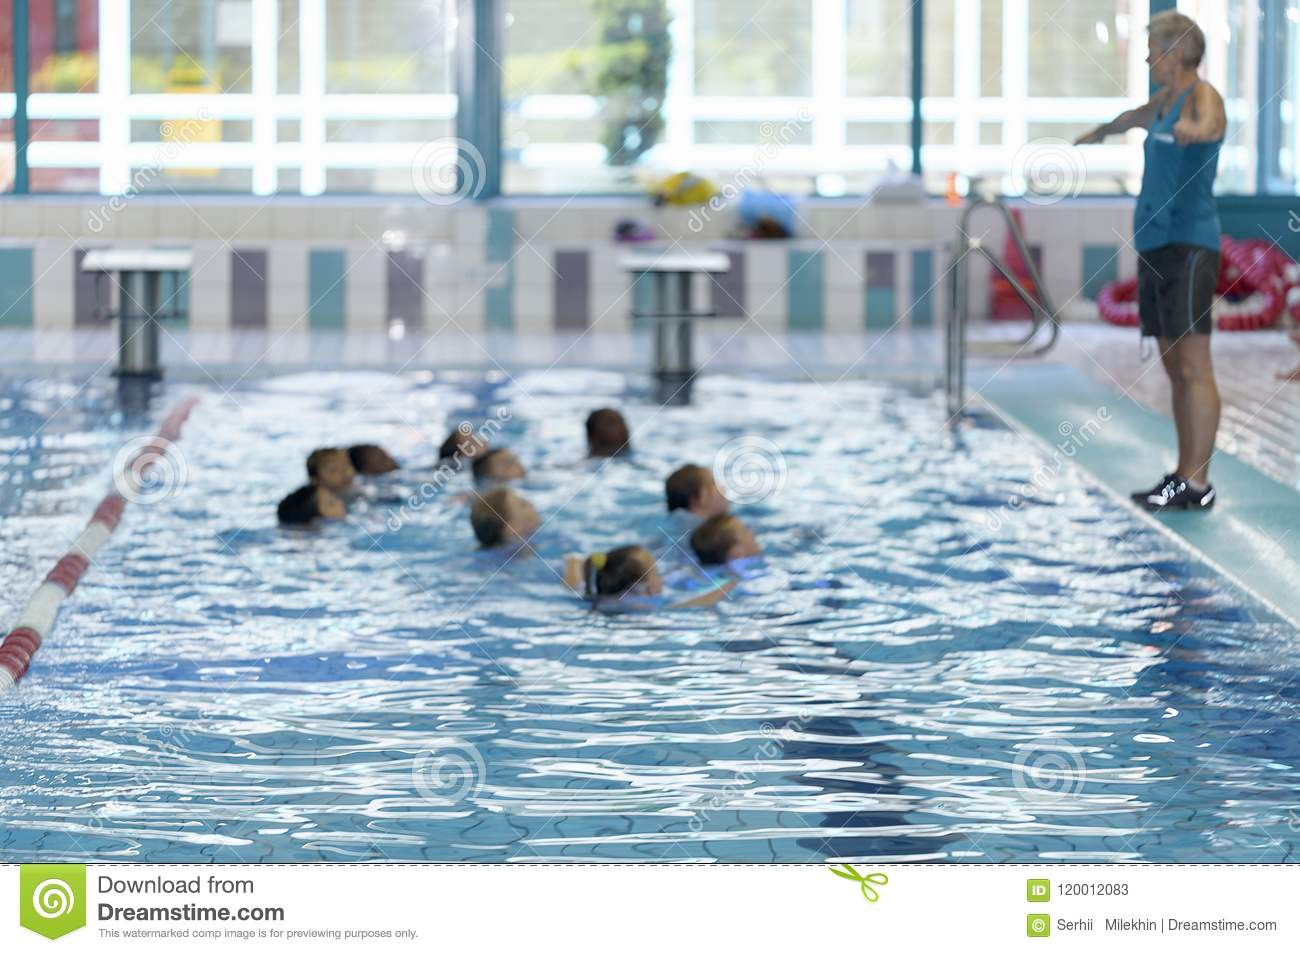 Blurred. Group of Children learn to swim in the pool